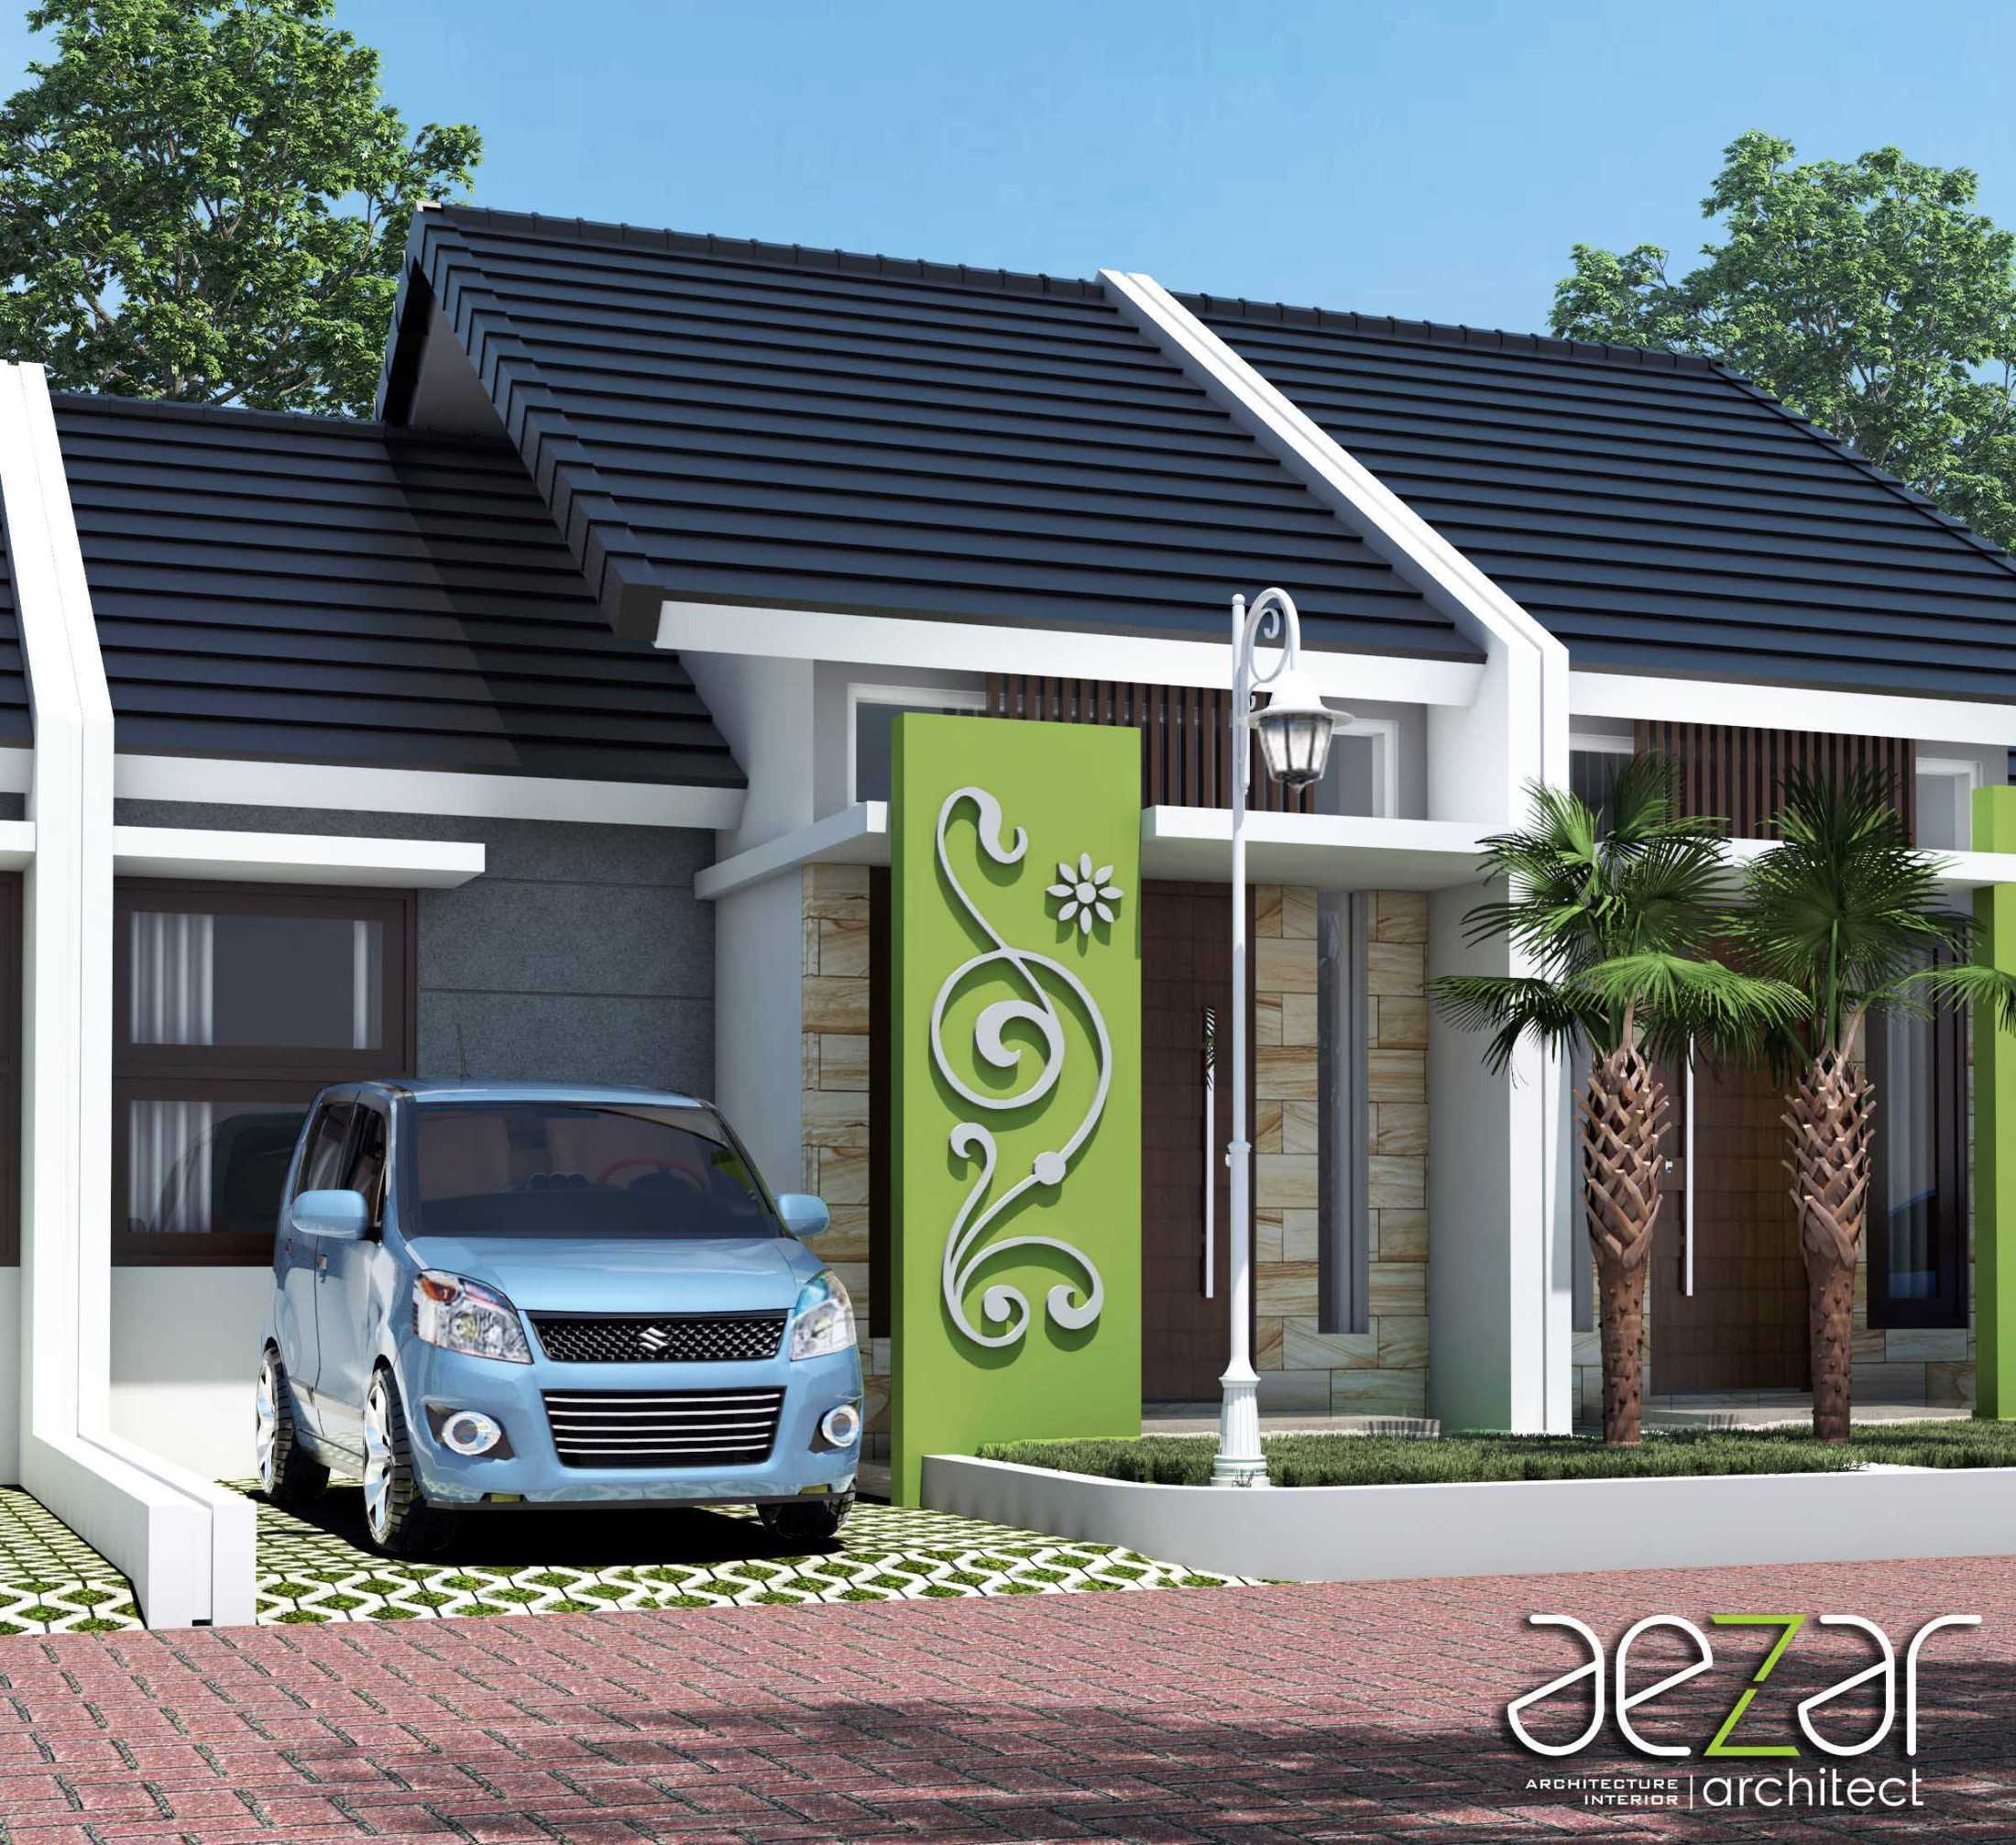 Aezar Architect di Batang